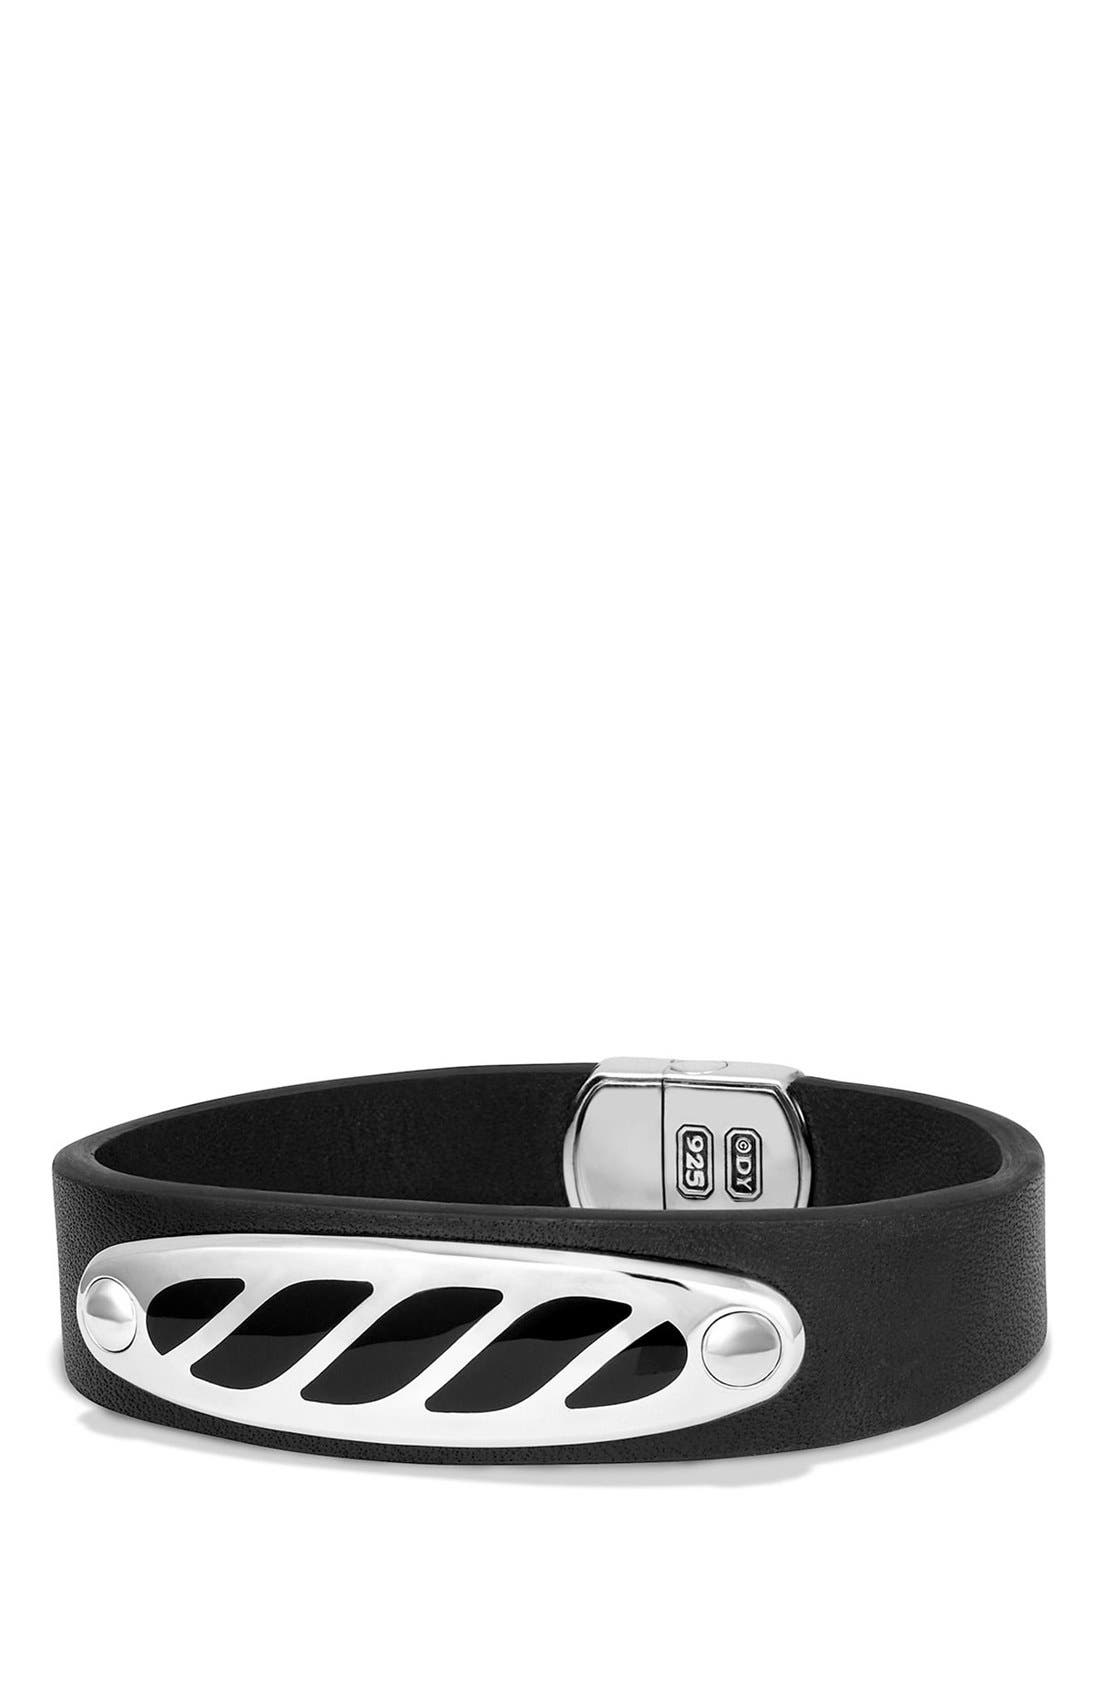 Graphic Cable Leather ID Bracelet,                             Main thumbnail 1, color,                             041